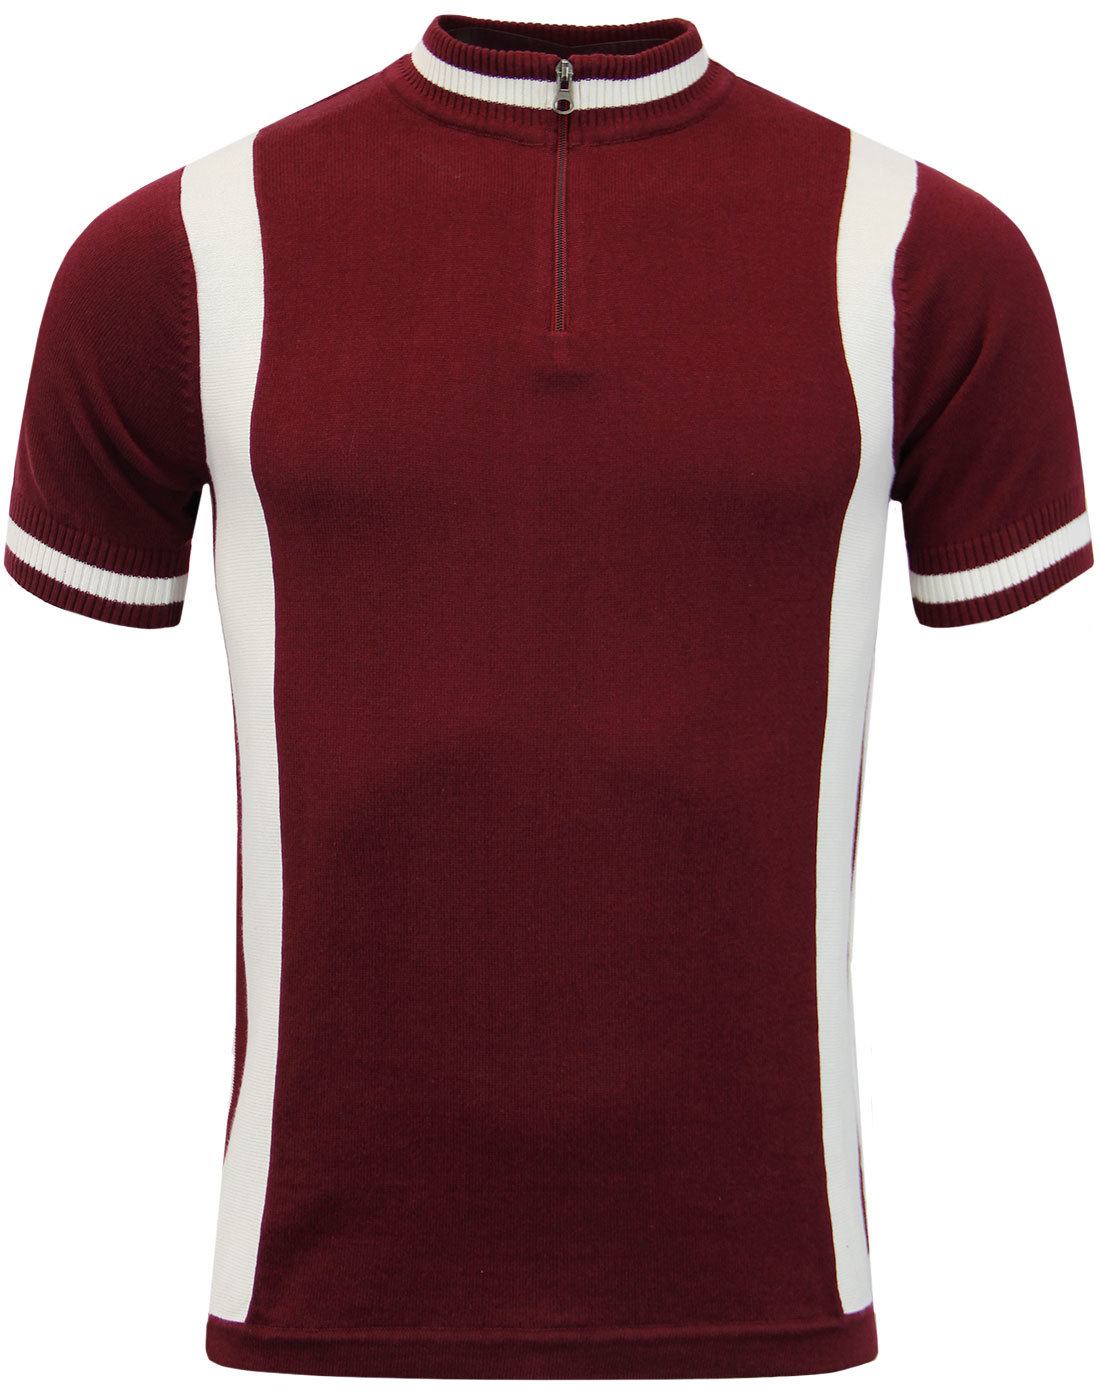 Vitesse MADCAP ENGLAND Retro Mod Cycling Top (Z)